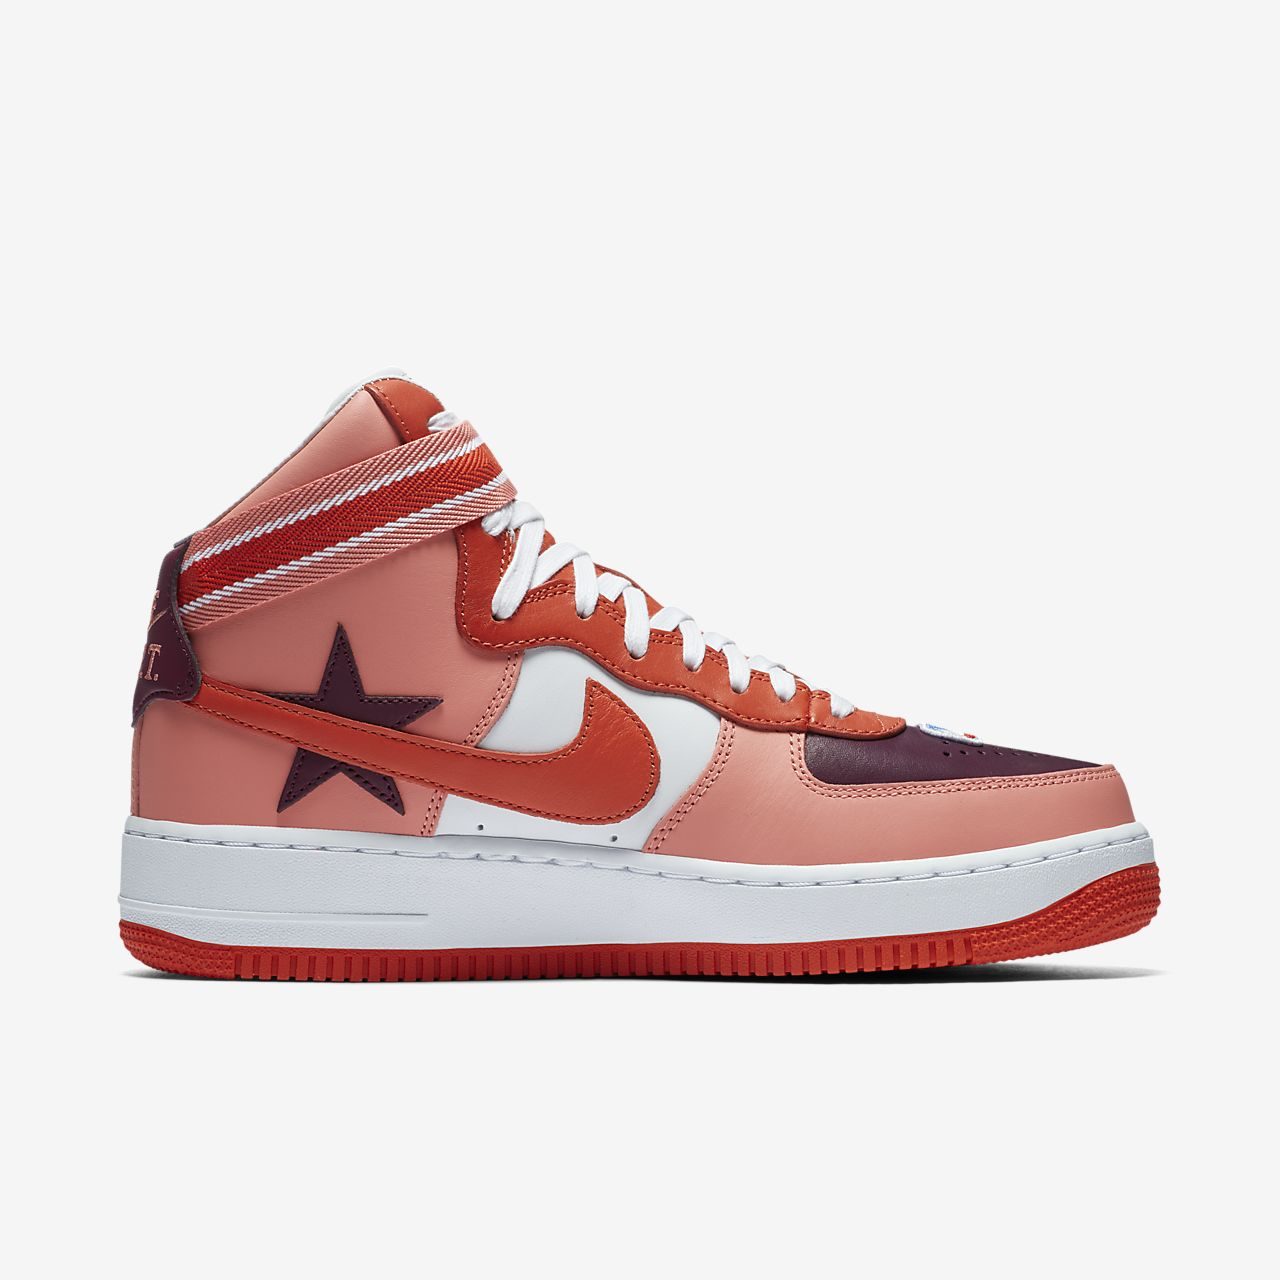 ... Chaussure NikeLab Air Force 1 High x RT pour Homme